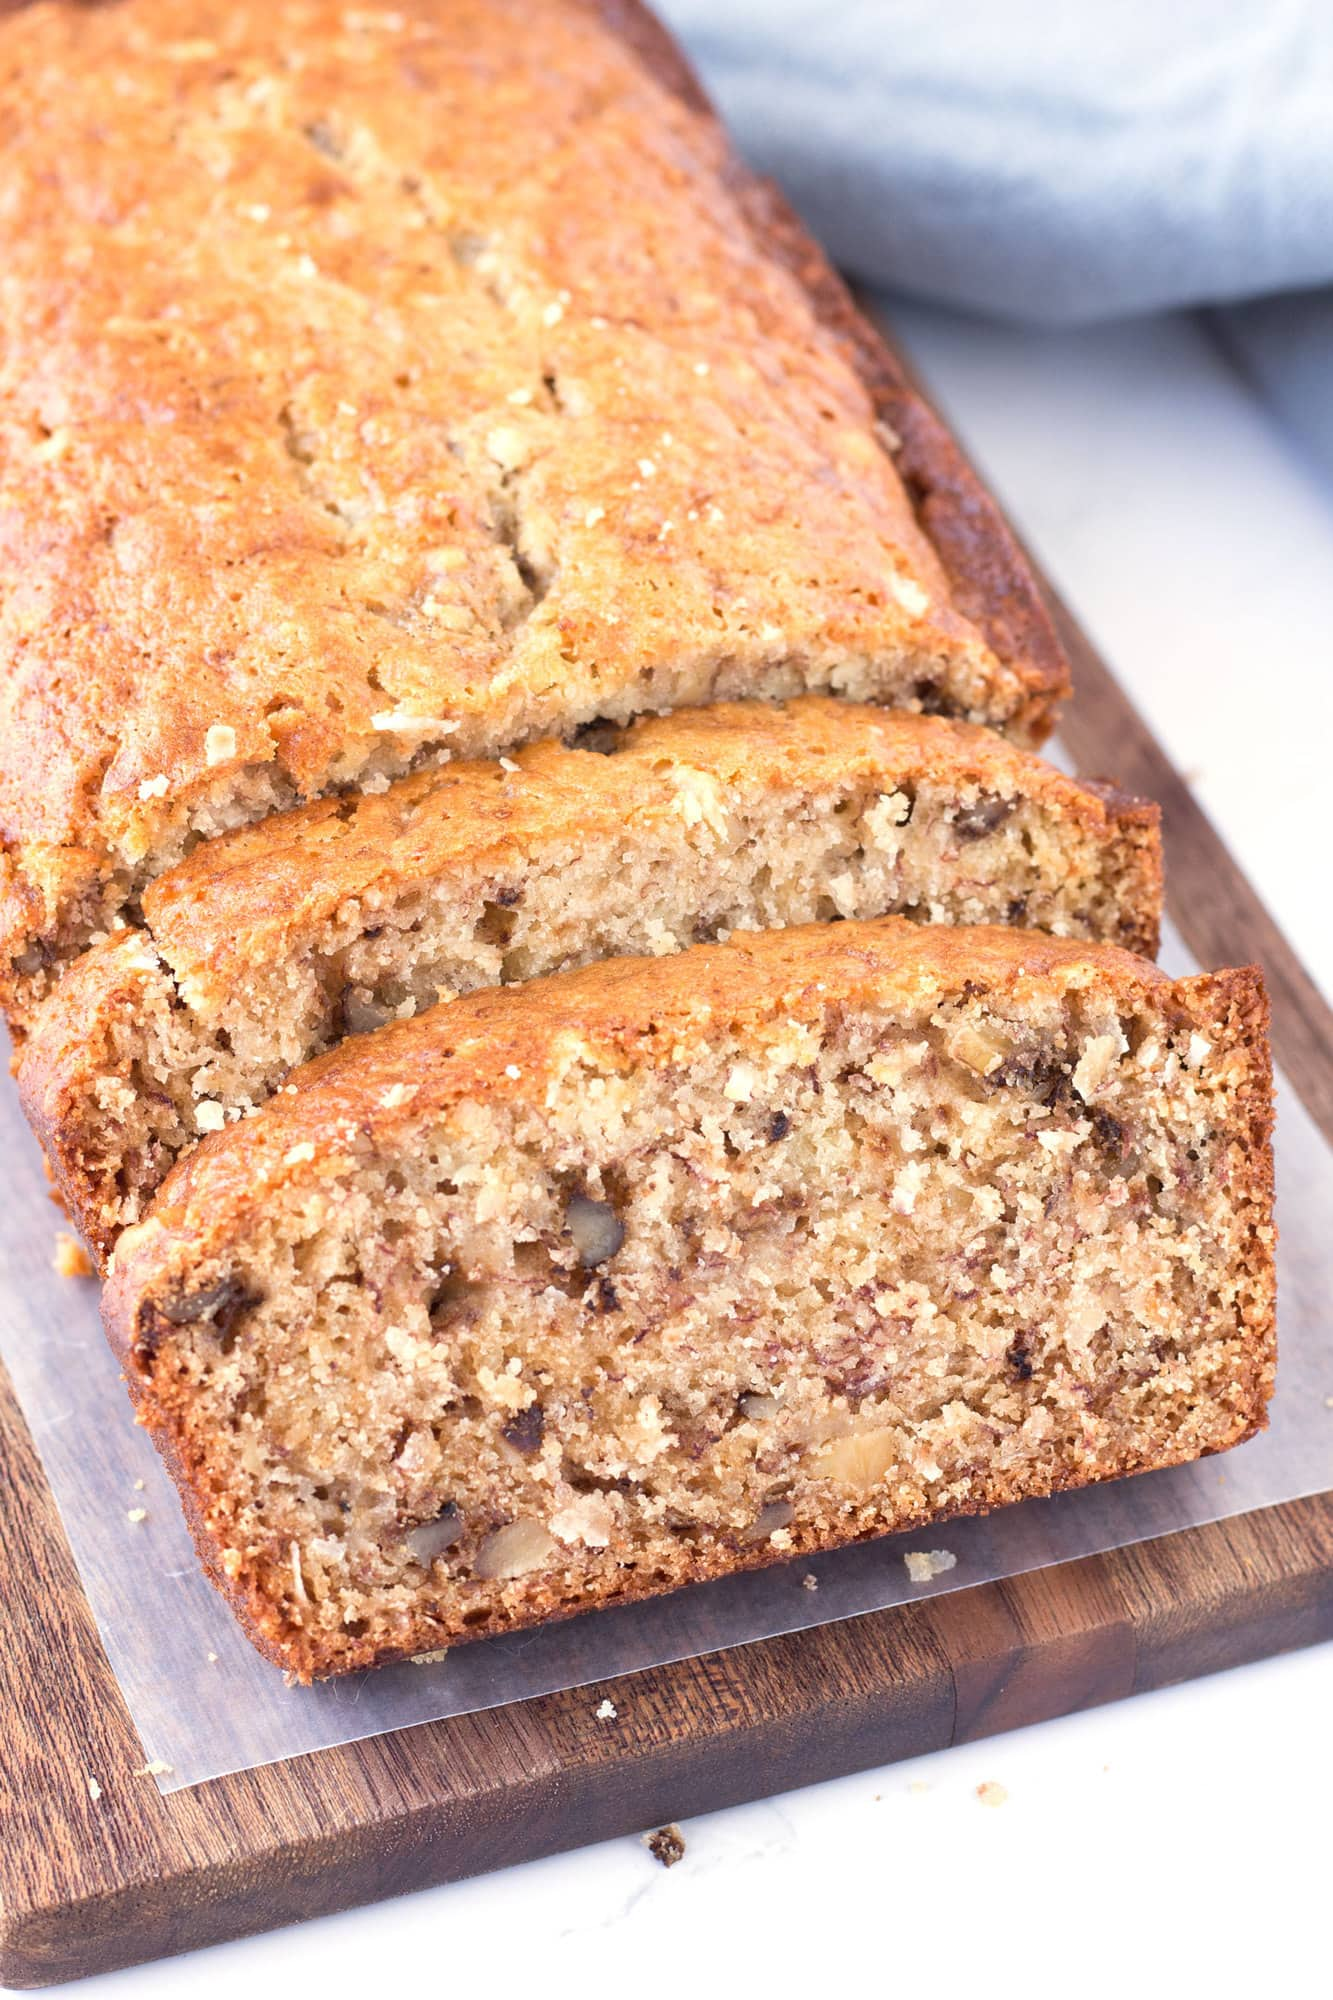 Slices of Easy and Moist Banana Bread on cutting board